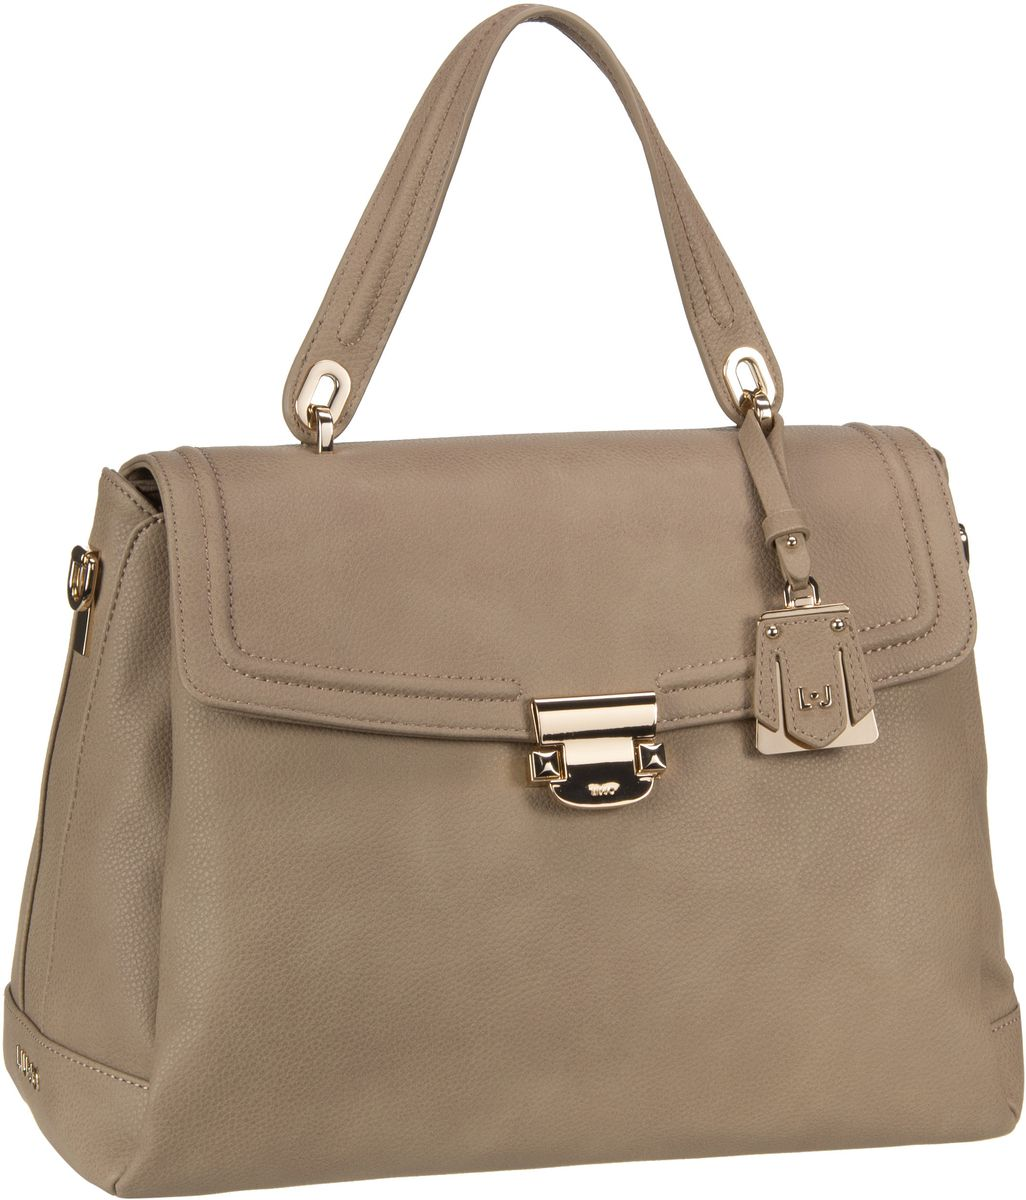 Handtasche Long Island Top Handle M Arenaria